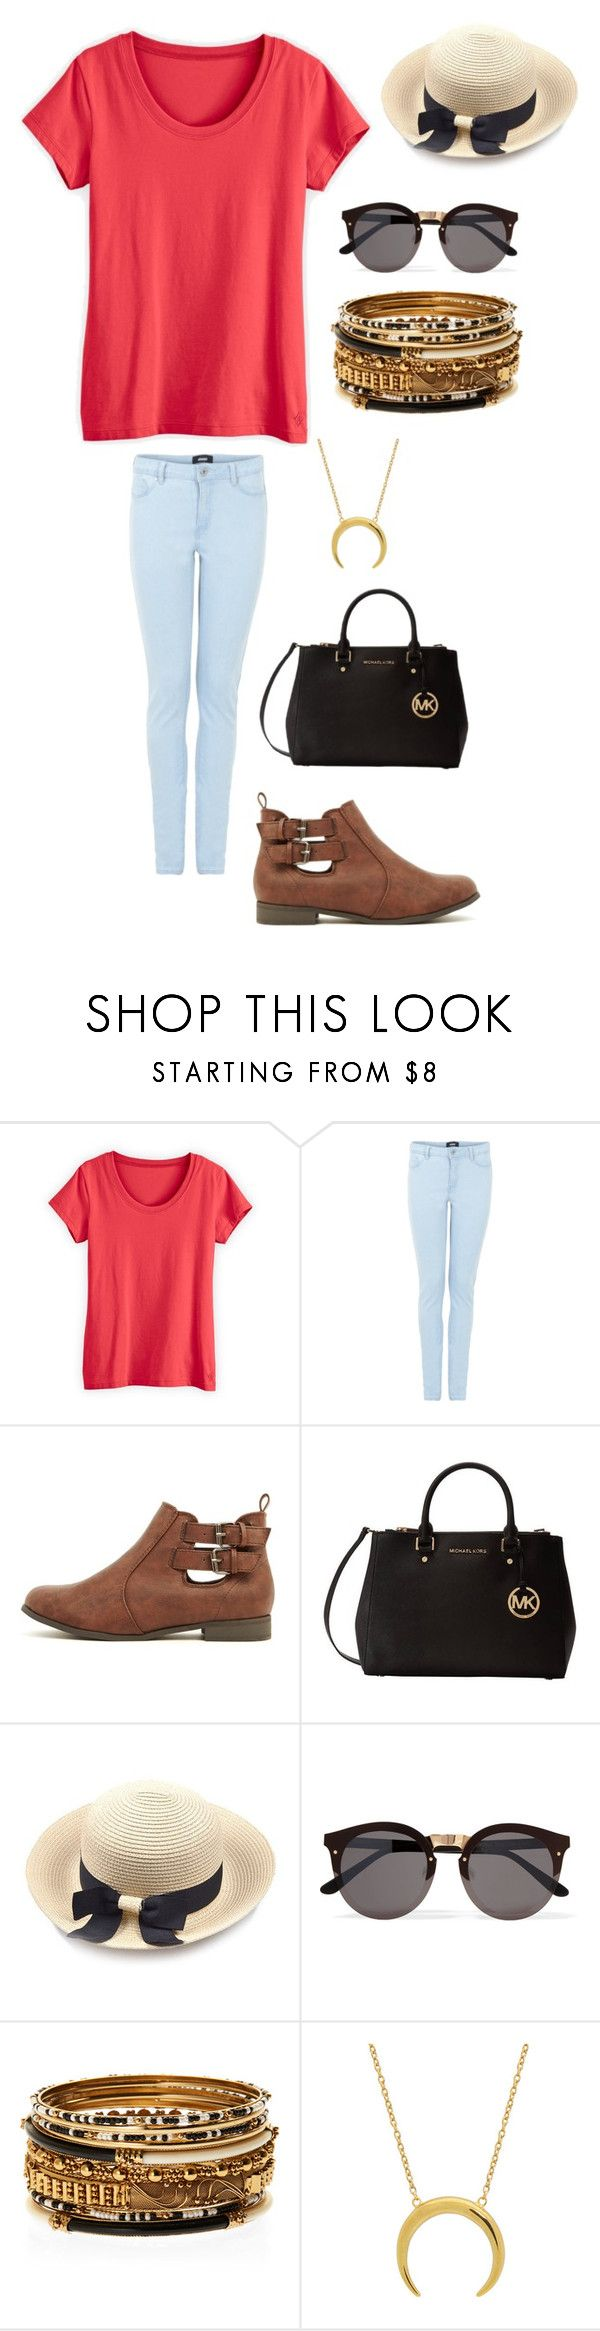 """""""Untitled #4329"""" by kaitoven on Polyvore featuring Michael Kors, Illesteva and Amrita Singh"""